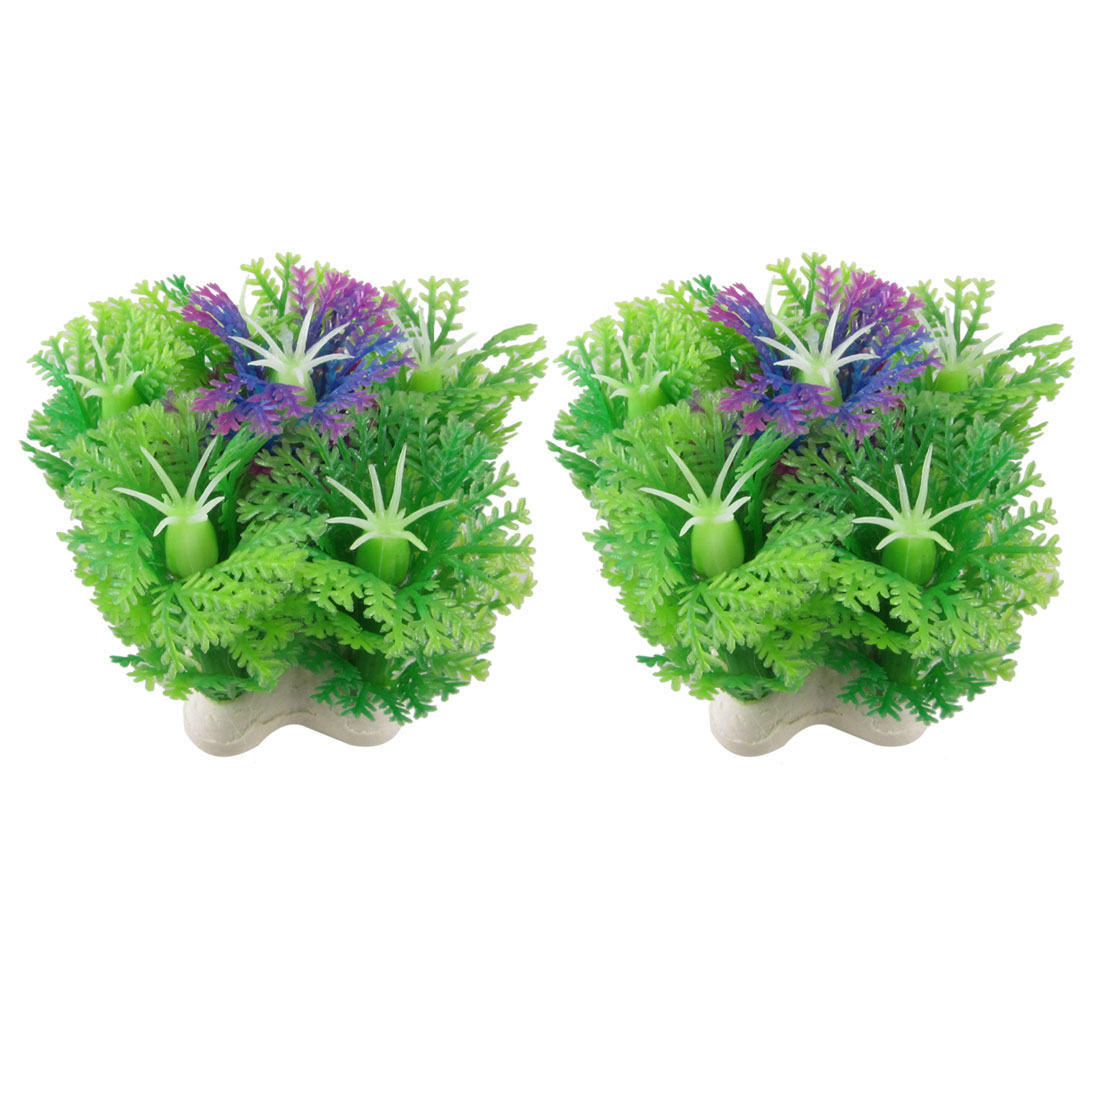 2-x-Manmade-Green-Purple-Plastic-Plant-Decoration-2-4-for-Aquarium-Fish-Tank